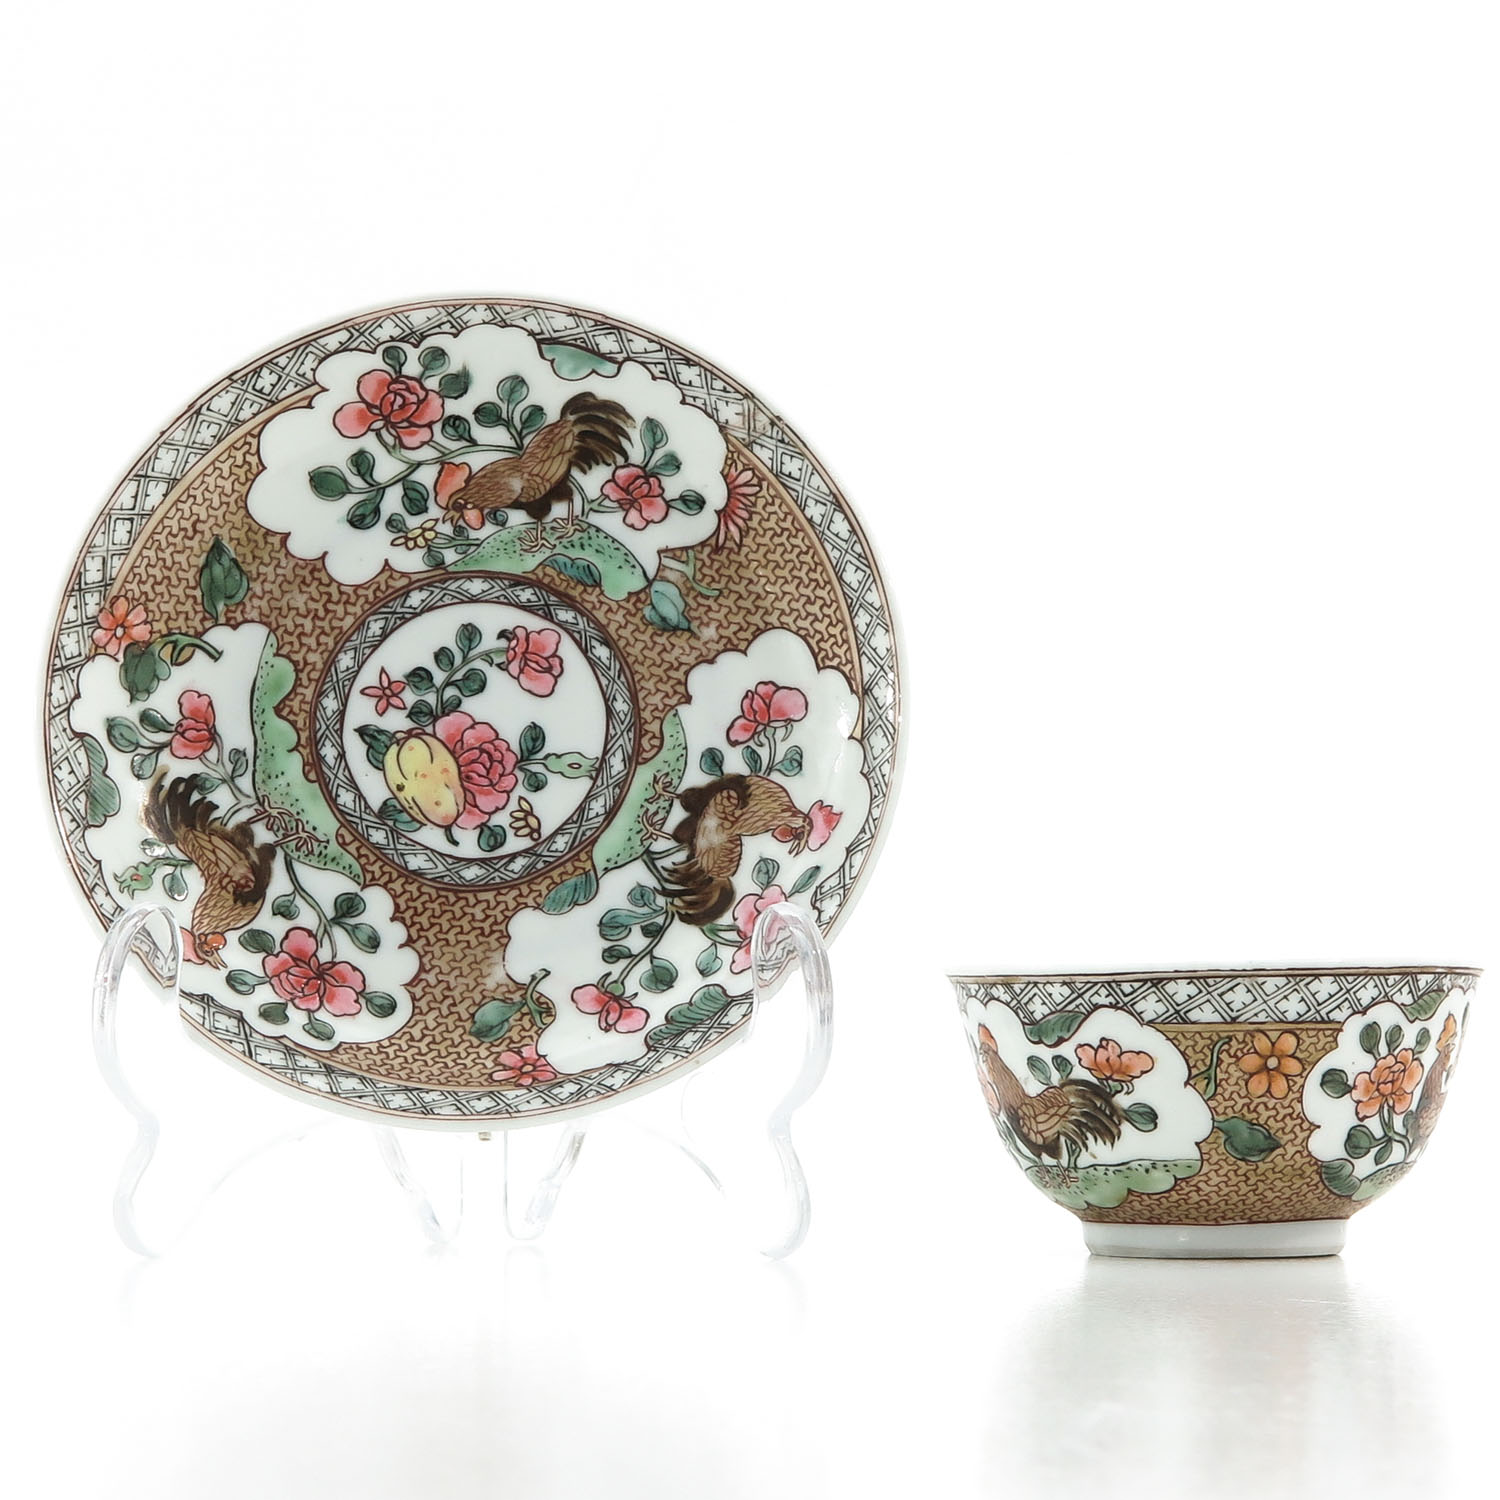 A Rooster Decor Cup and Saucer - Image 3 of 10